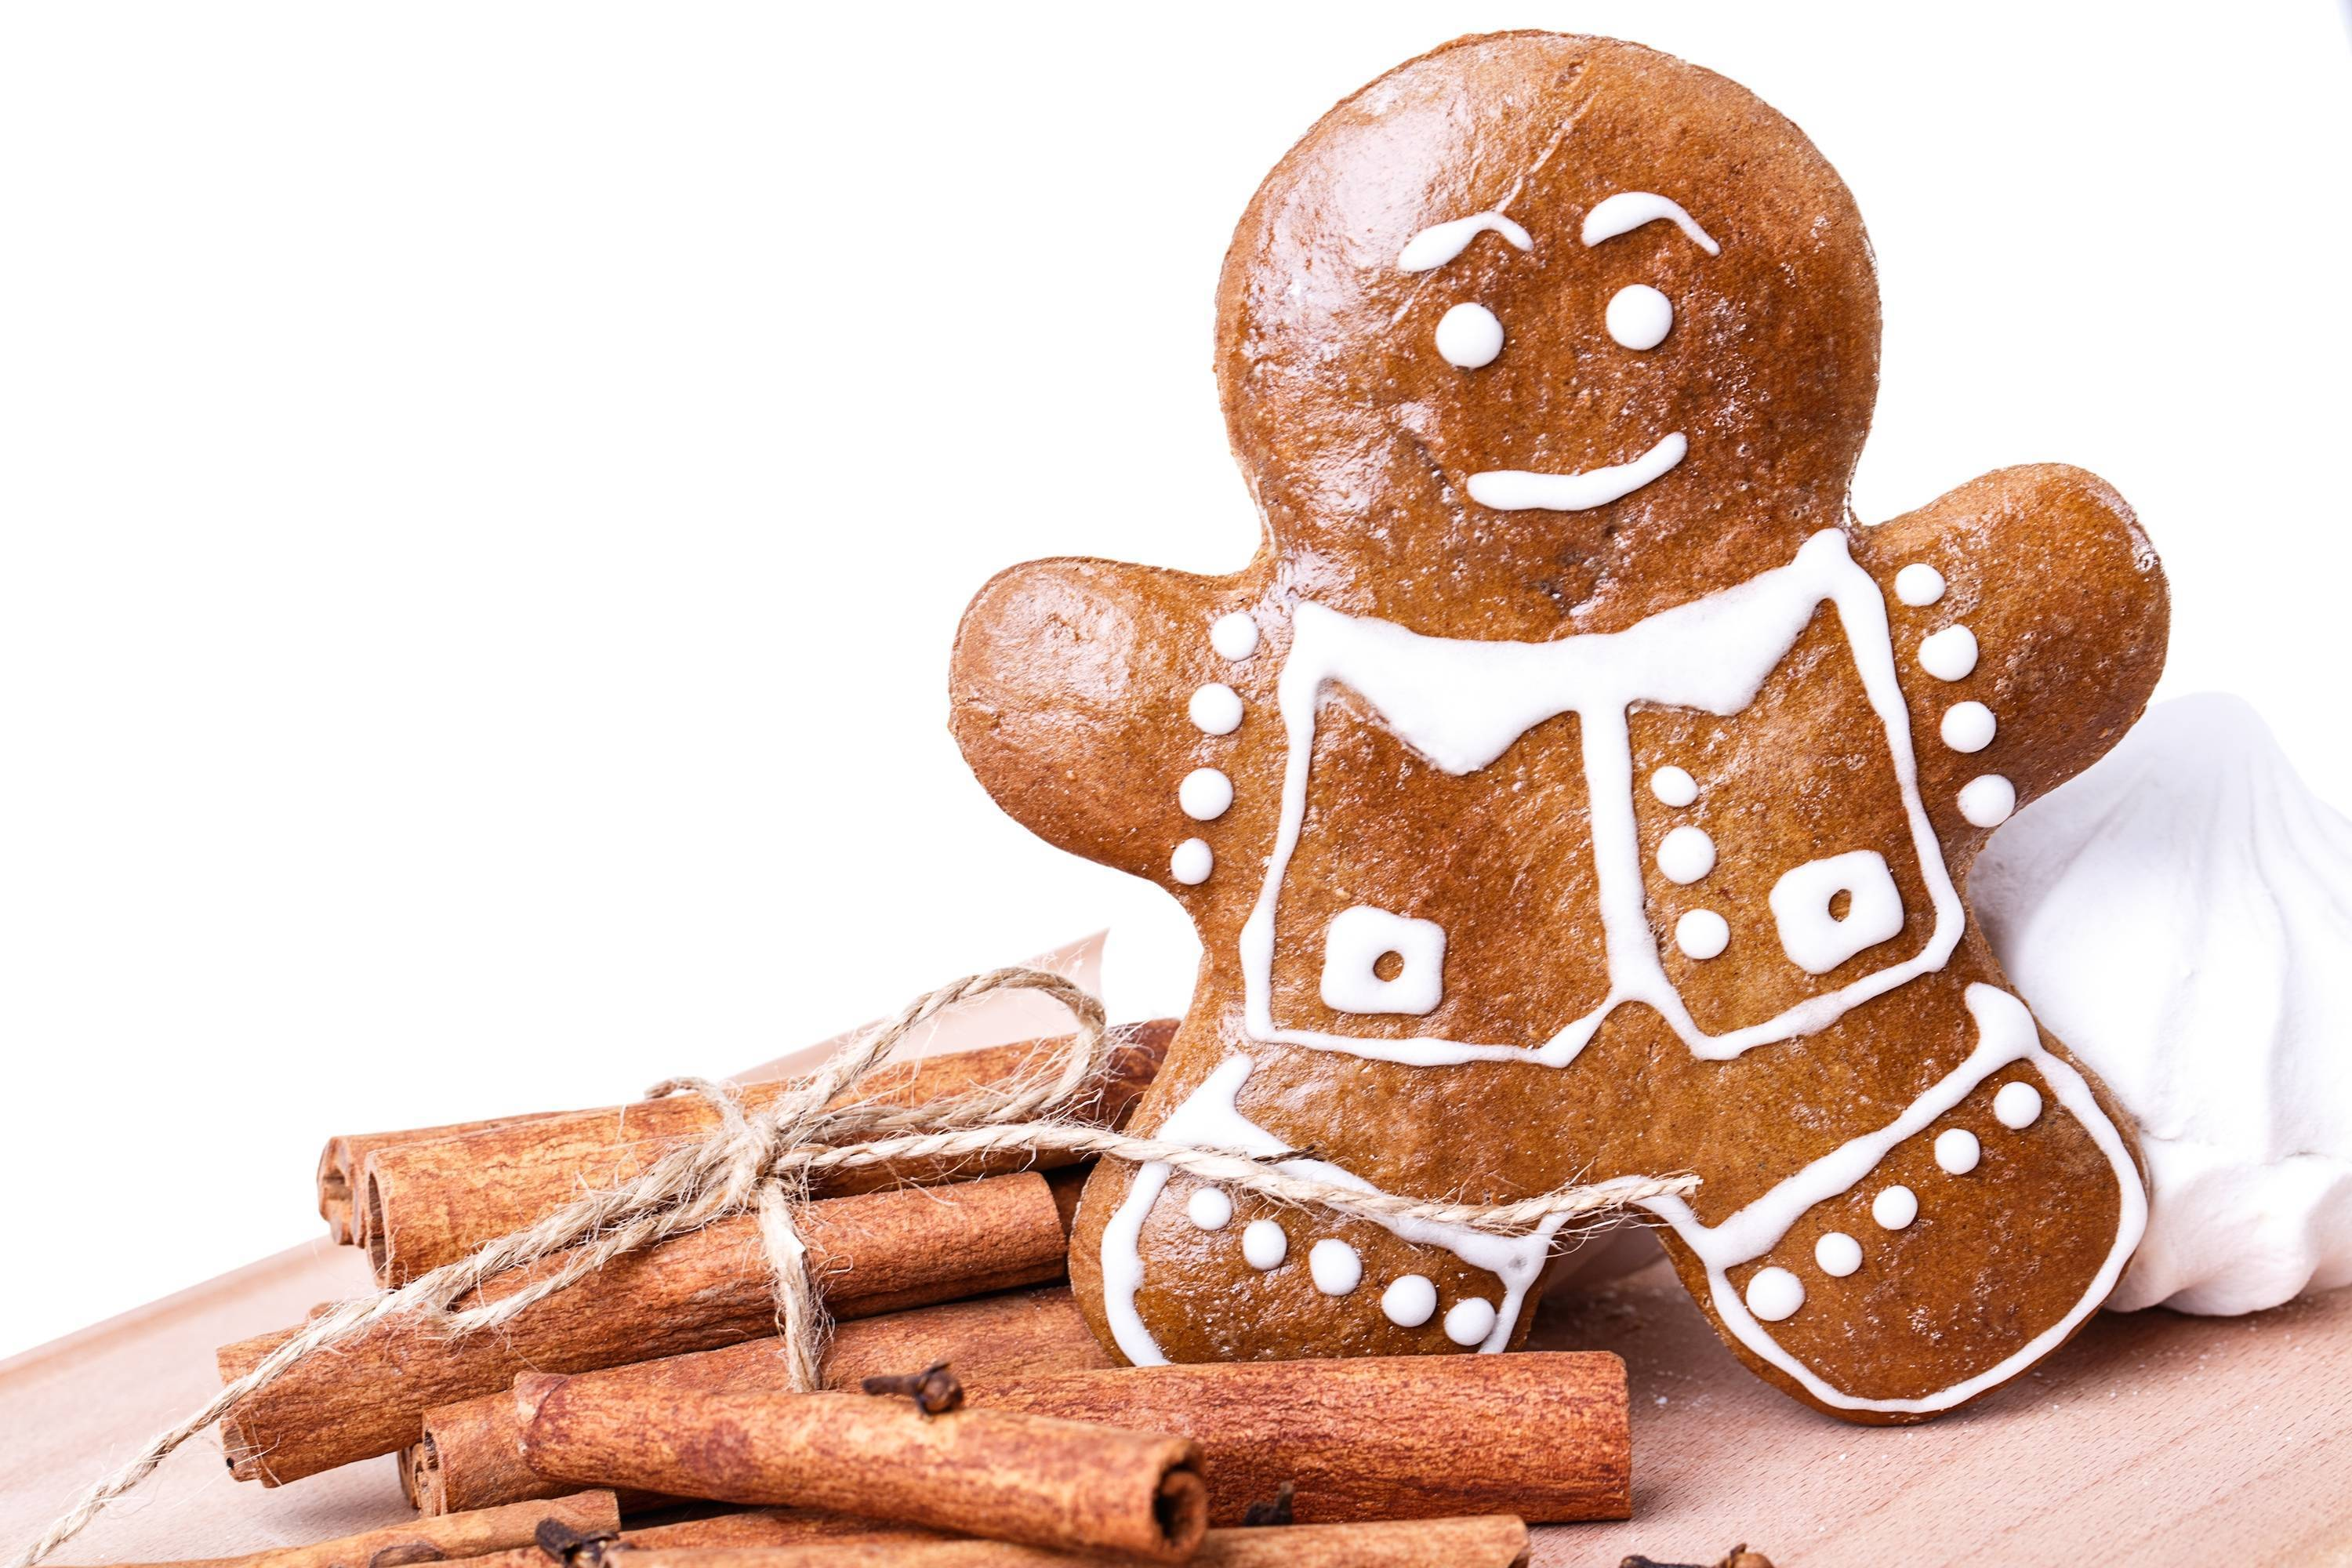 December Features Holiday-Themed Activities at the Hasbrouck Heights Library